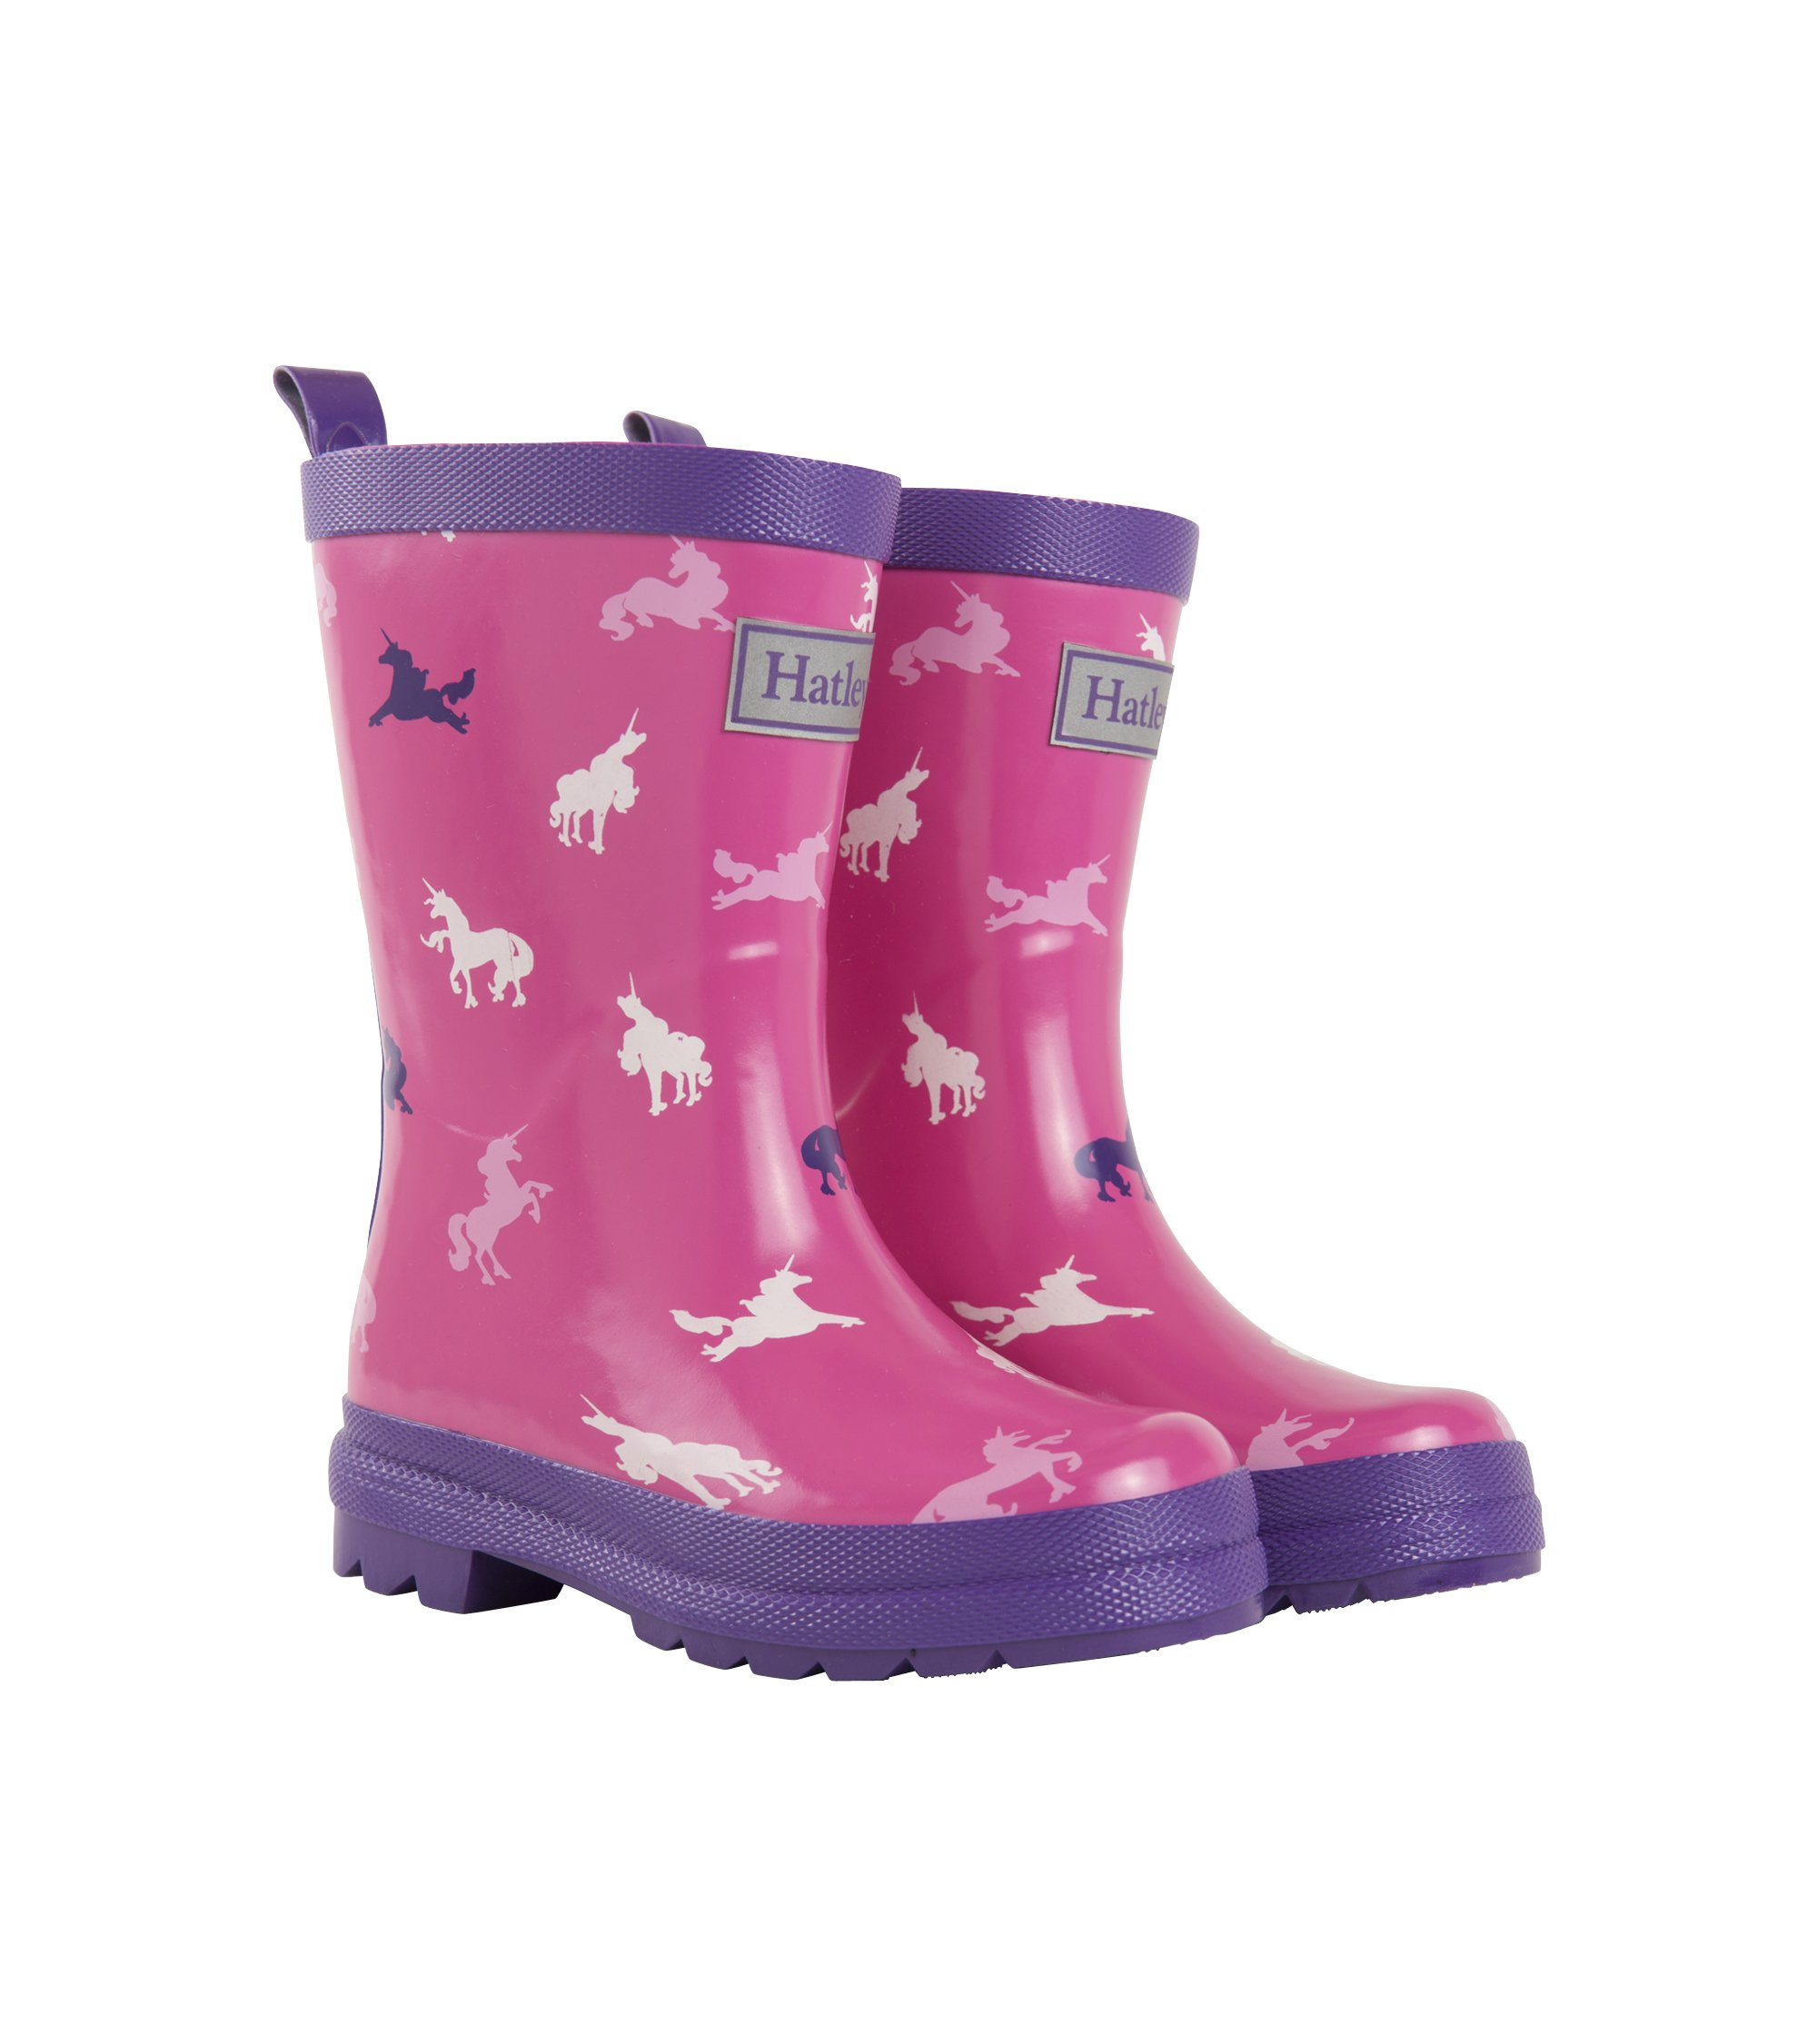 Hatley Girls Printed Rain Boot, Unicorn Silhouettes, 6 M US Toddler